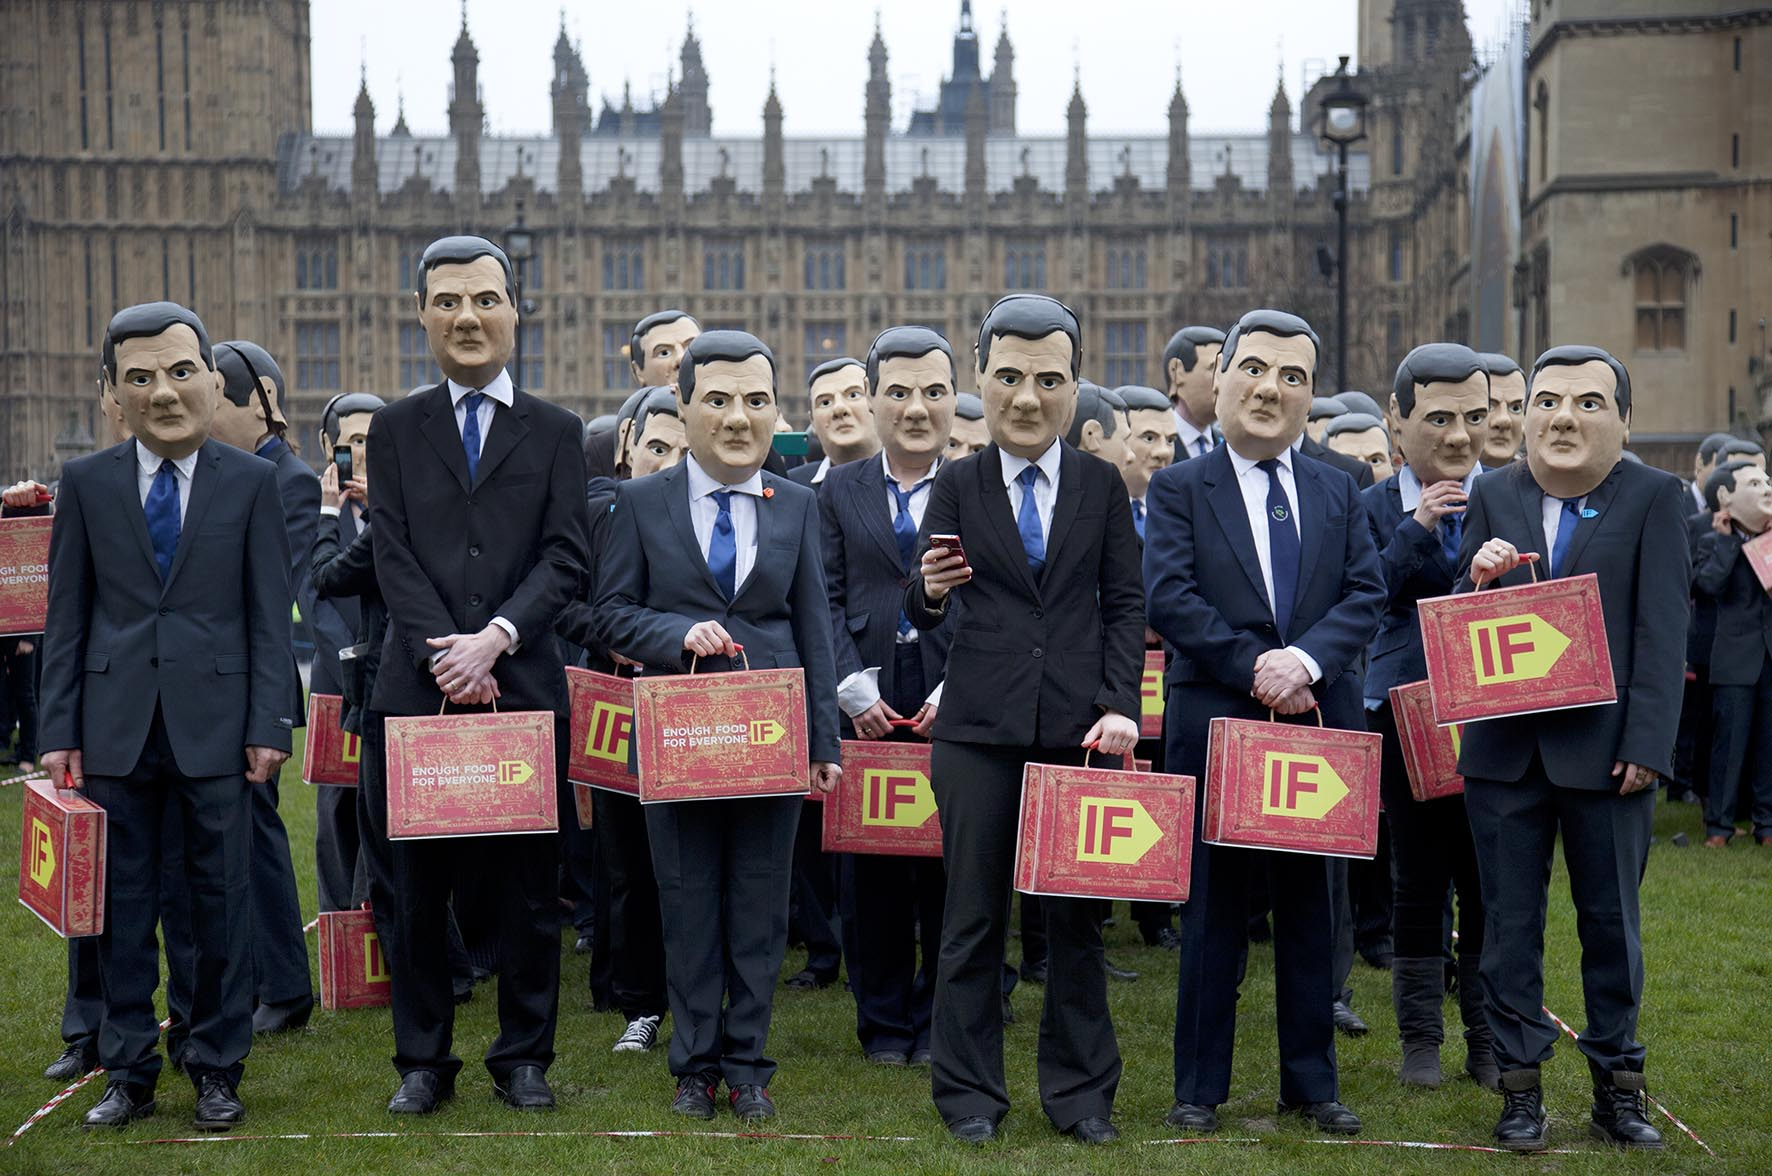 IF Campaign activists dressed as George Osborne gather in Westminster to remind the Chancellor to uphold aid promises and end tax dodging.